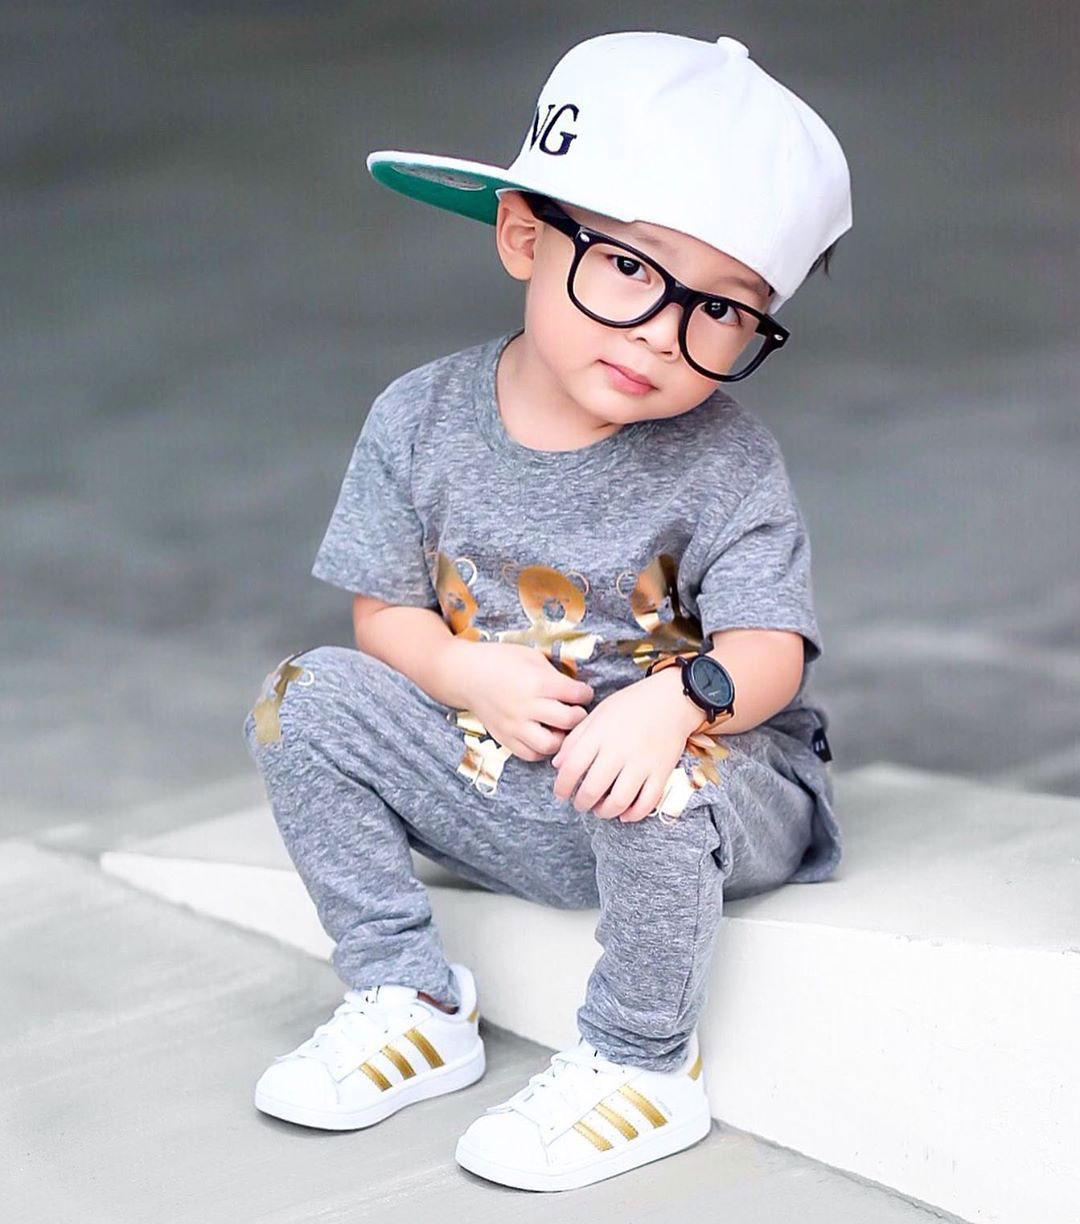 Stylish Baby Boy Dp Images photo for download